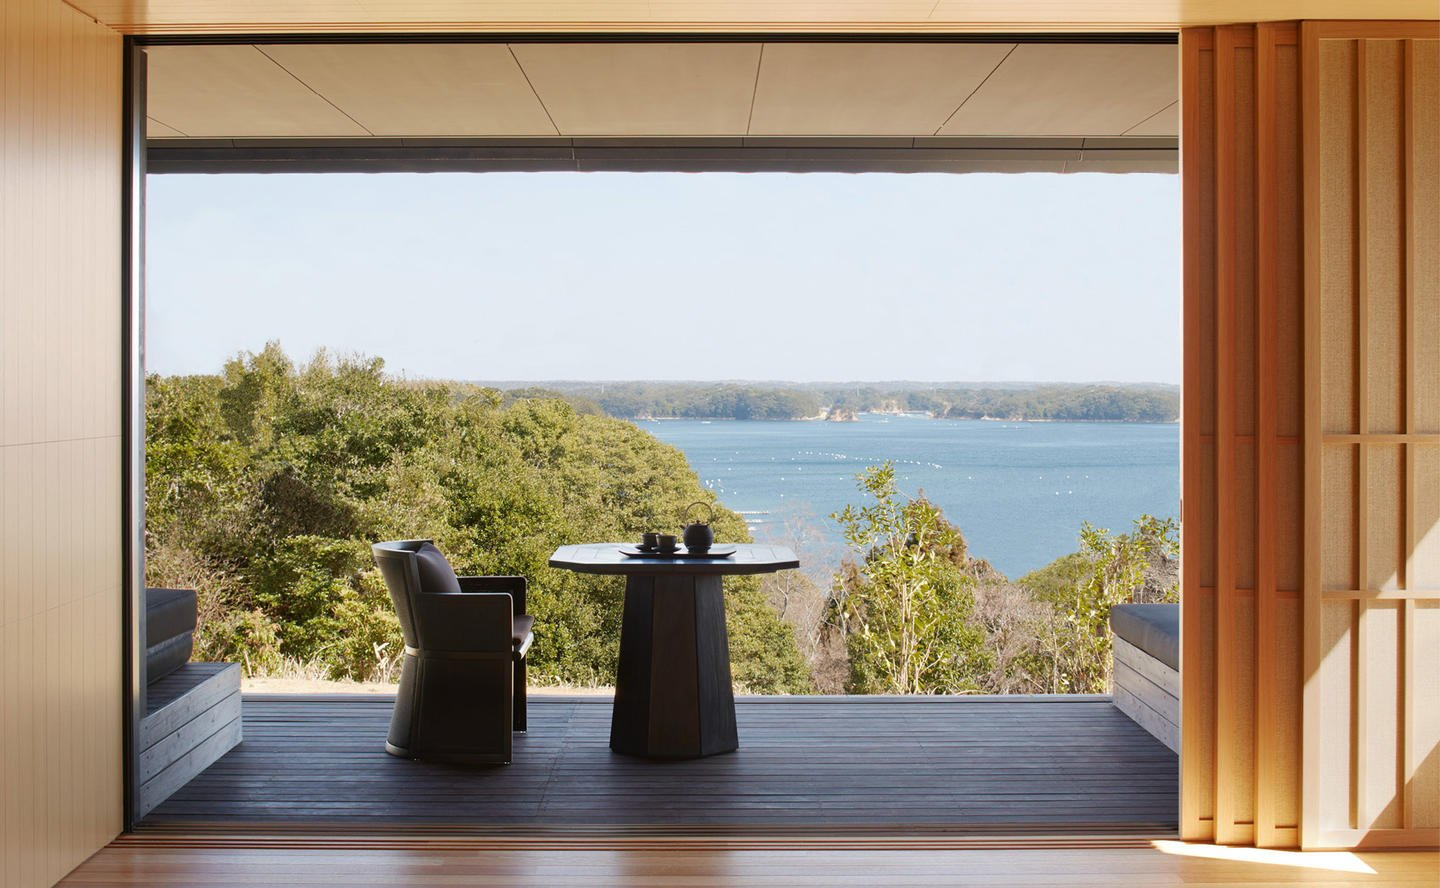 Terrace, Sora Suite - Amanemu, Japan